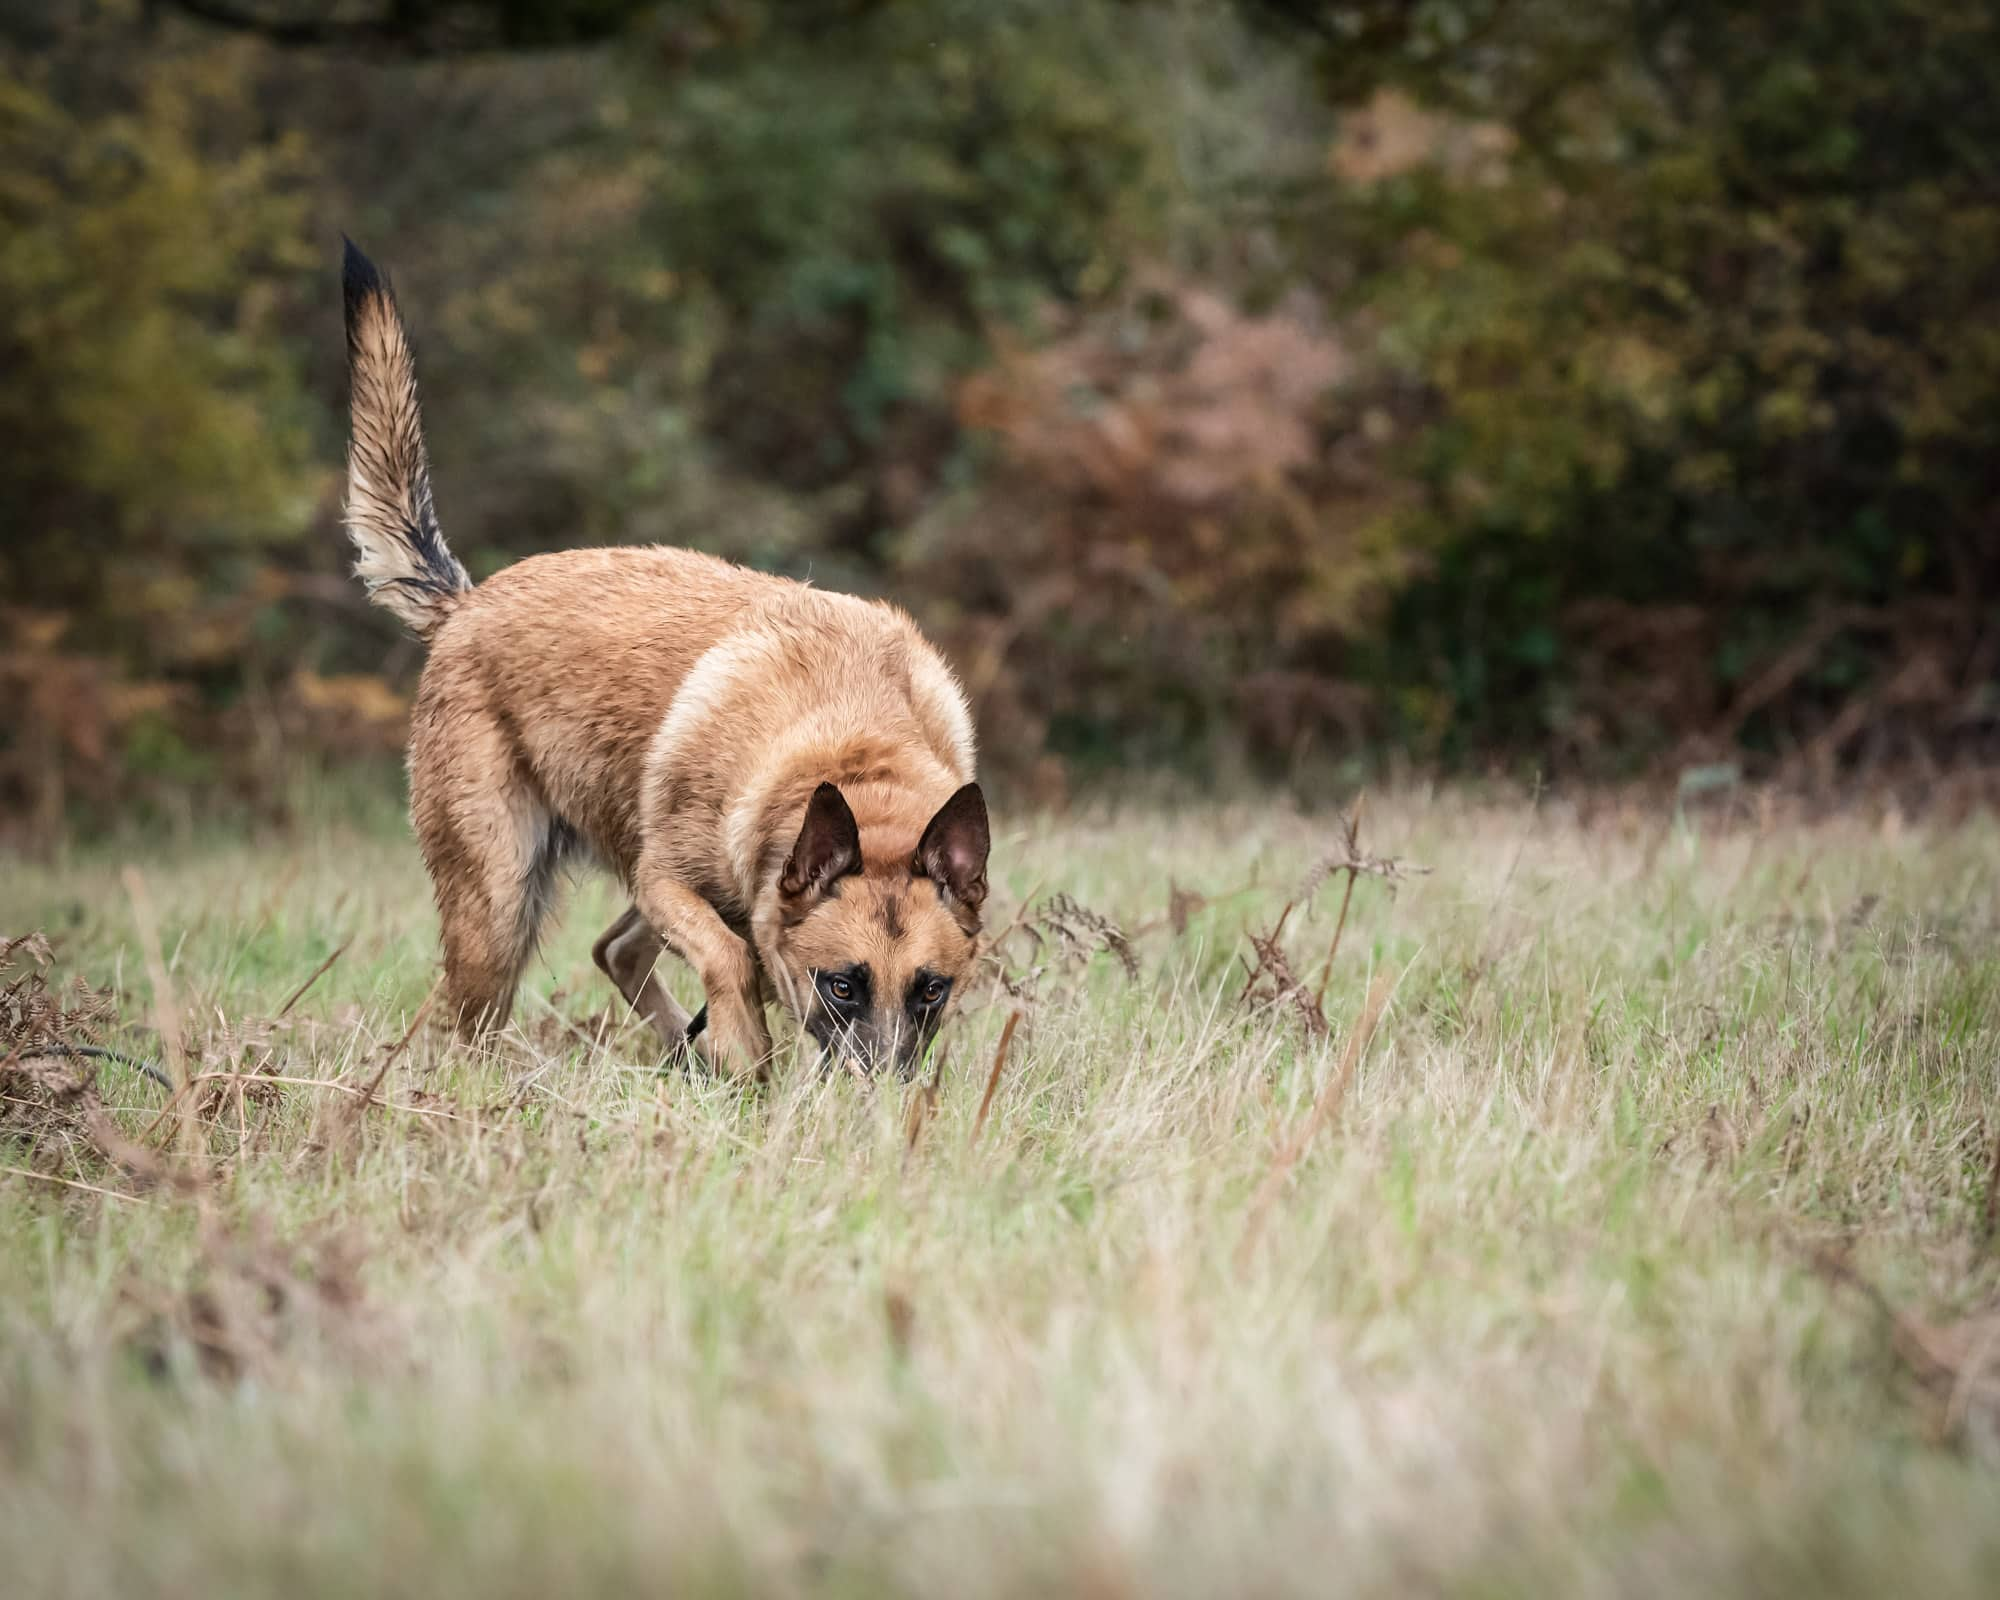 nic Bisseker photography rescue dog malinois